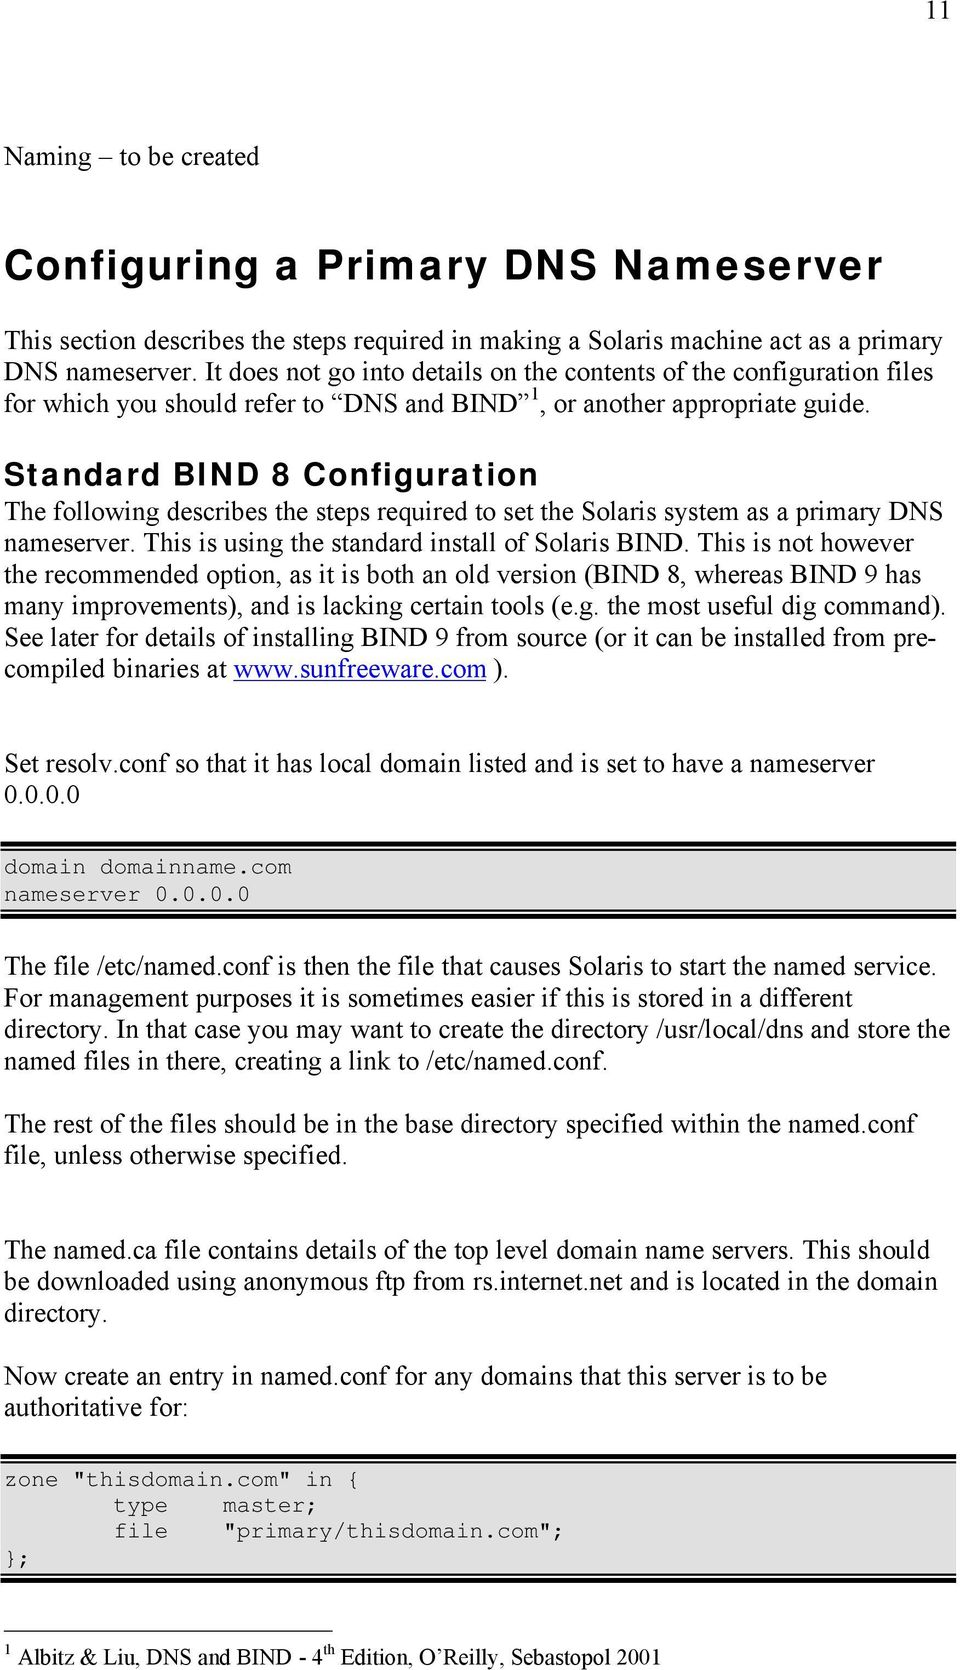 Standard BIND 8 Configuration The following describes the steps required to set the Solaris system as a primary DNS nameserver. This is using the standard install of Solaris BIND.